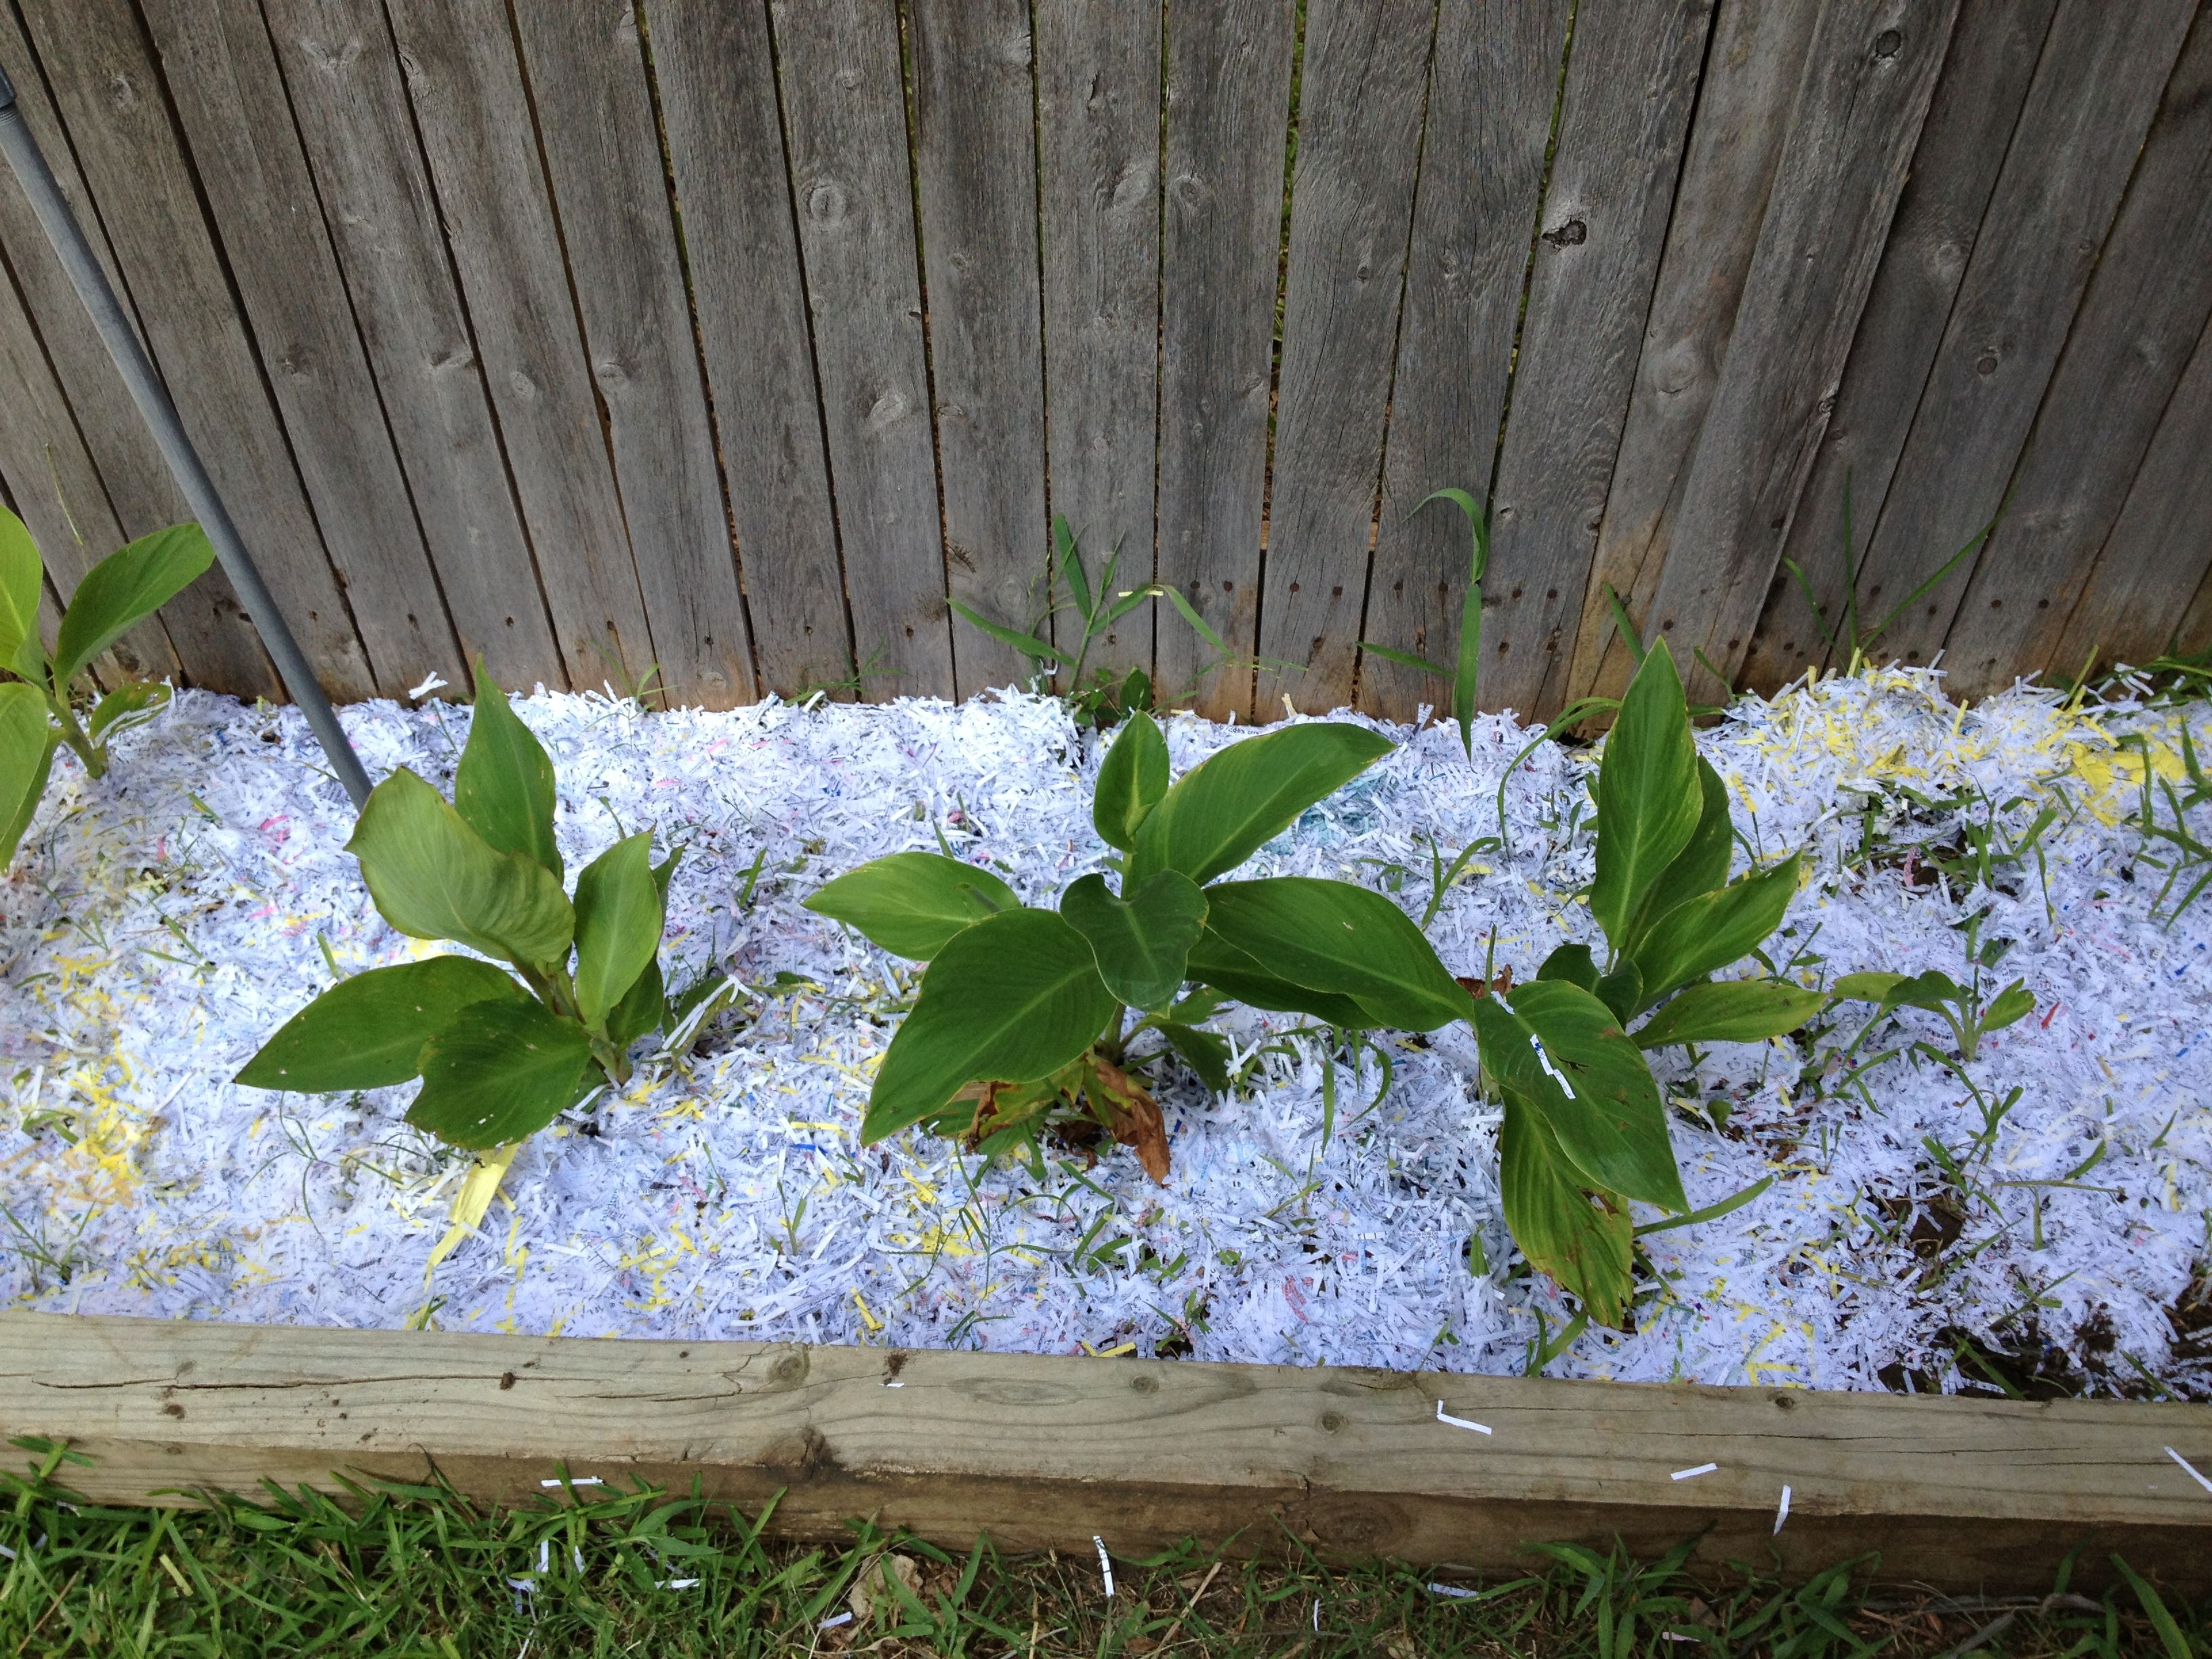 Weeds in flower beds spray - Diy Mulch Recycle Your Shredded Paper No Plastic Or Glossy Paper Place Shredded Paperthe Weedsmulchesflower Bedsplace